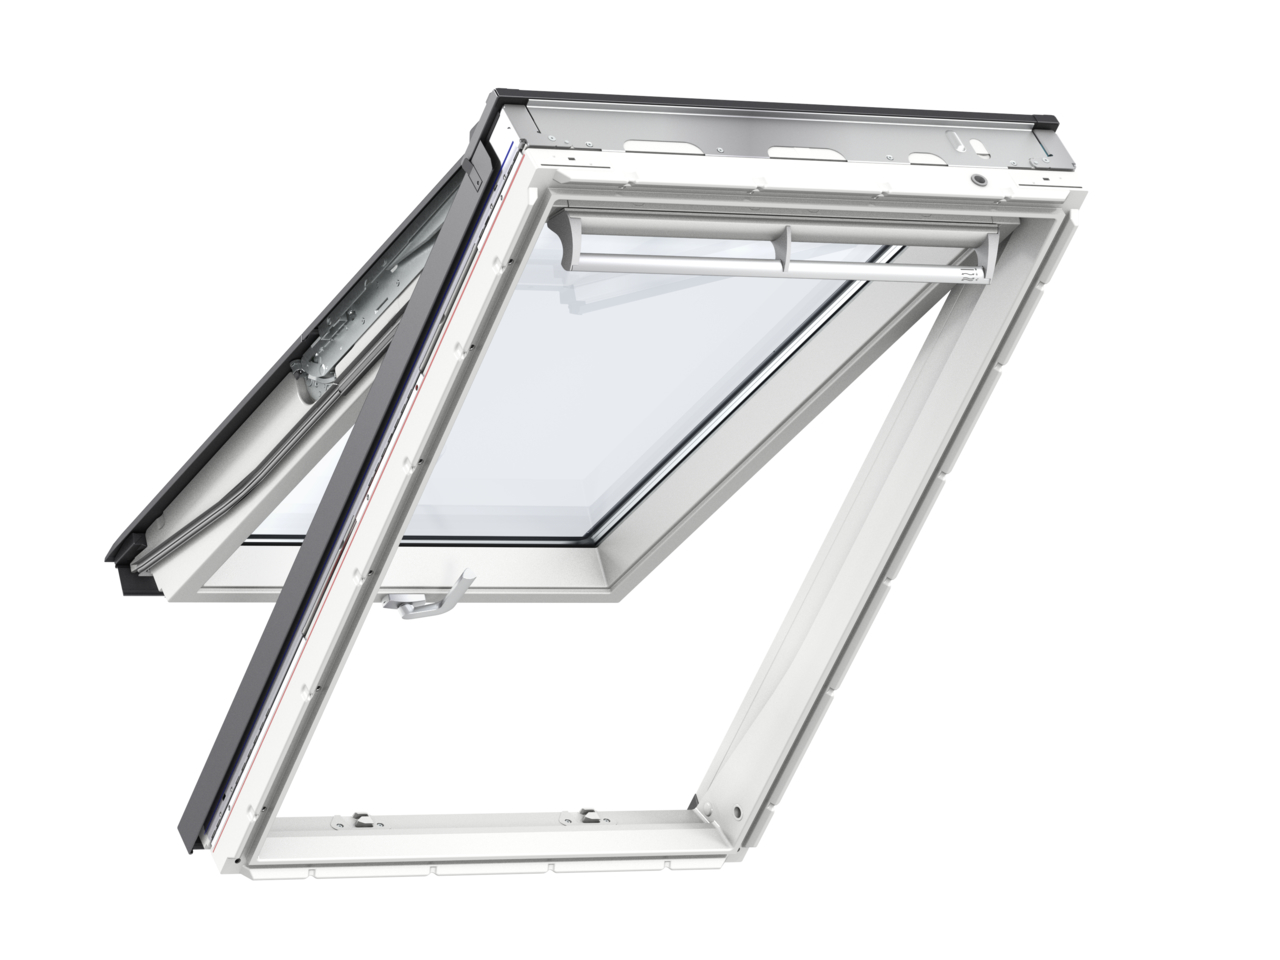 Velux GPU MK08 780 x 1400mm Top Hung Standard 70Pane Roof Window - White Polyurethane